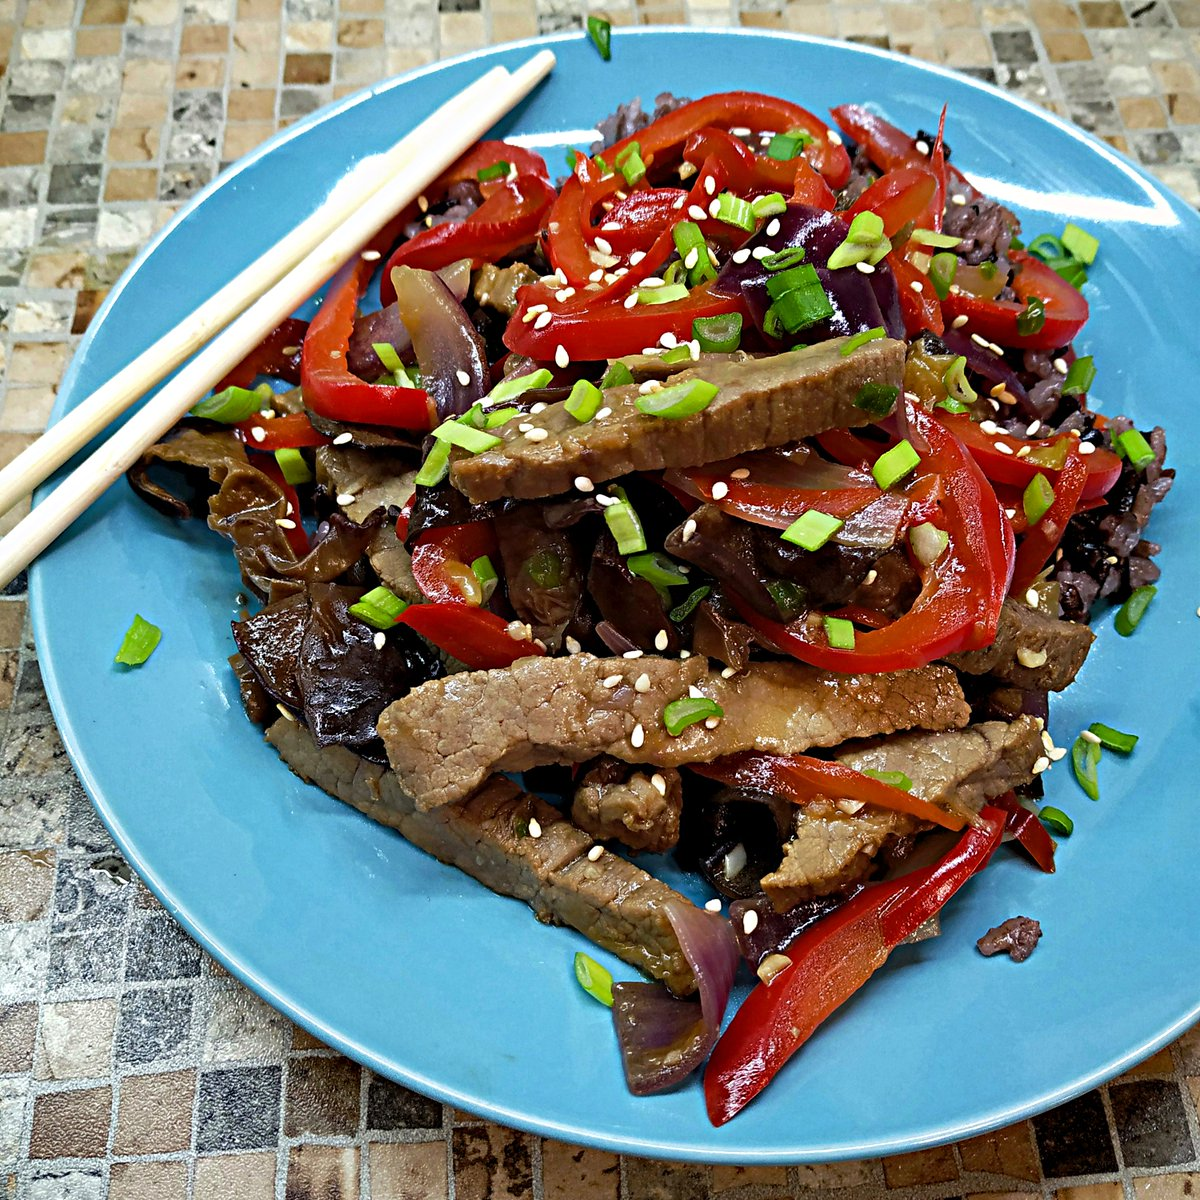 #cookforyourself #cookingtime #delicious #recipehousewife #foodblogger #food #cook #foodie  #tasty #delishes  #recipelinkinprofile #cooking #homecook #recipes #foodstyling #bonappetit #easyrecipe  #inyourplate #beefrecipe #chinesebeef #familydinner